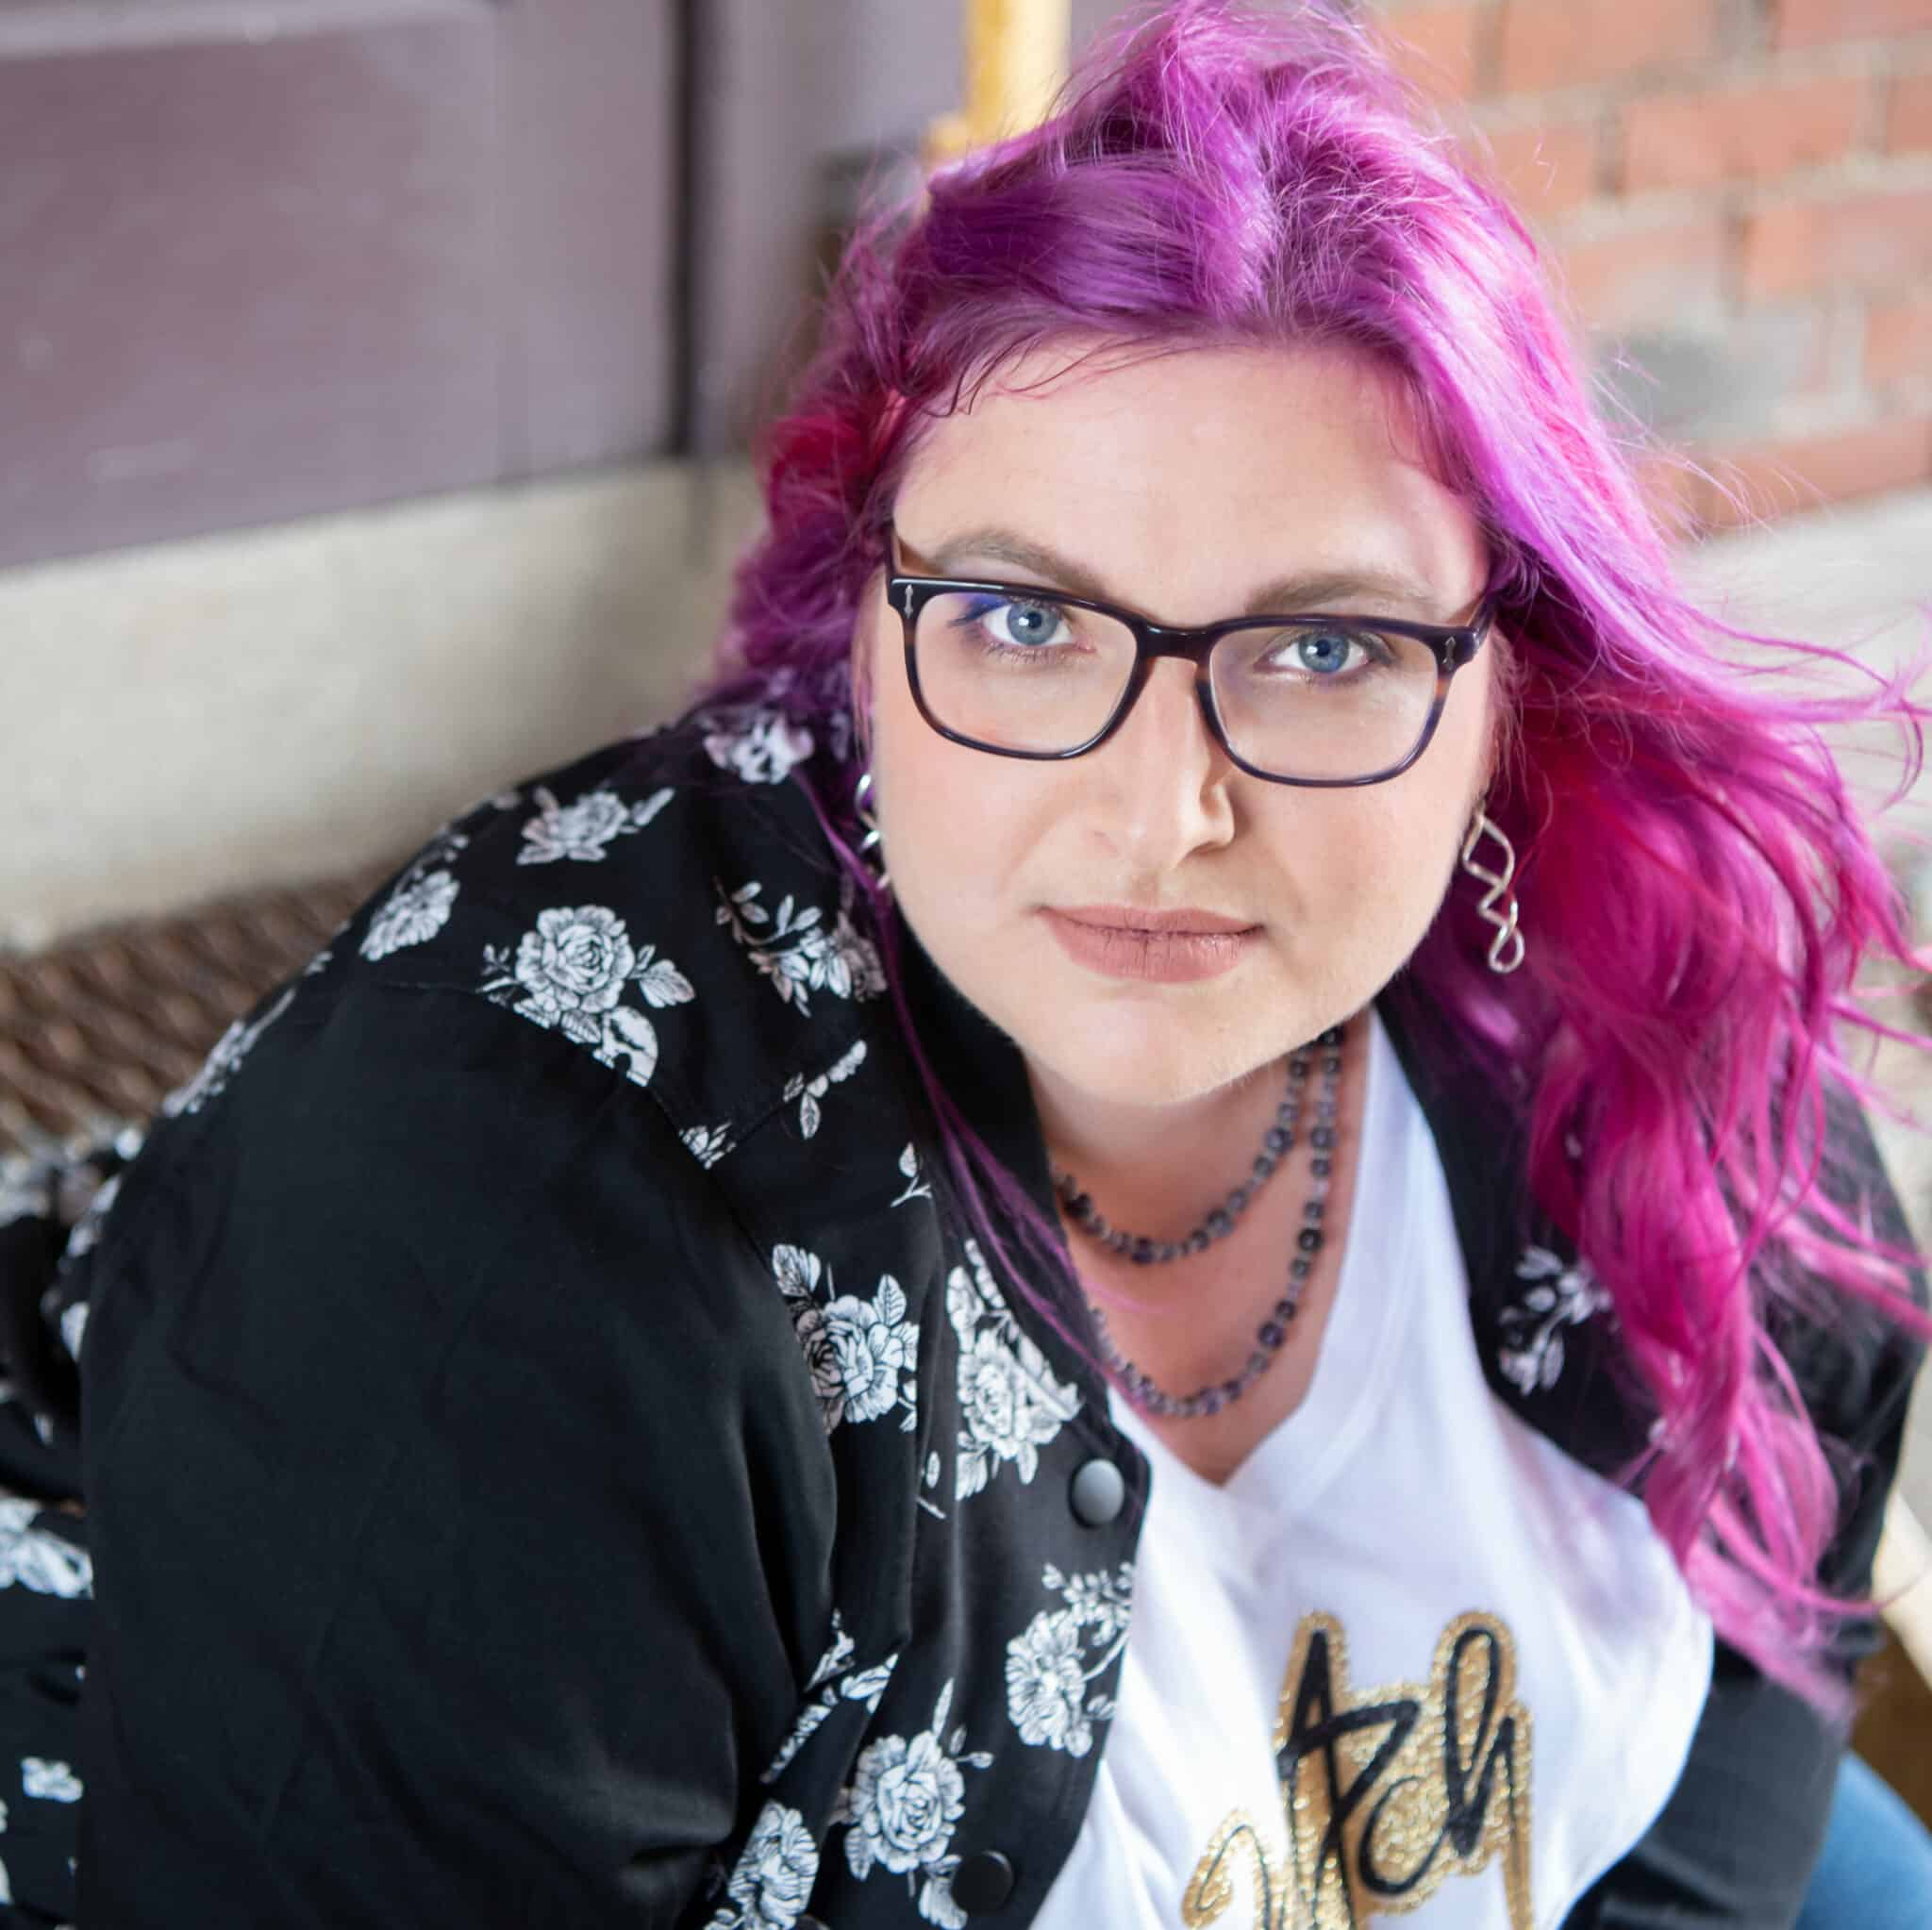 Patty Ryan Lee, with purple hair flowing around her face, gives an intense Mona Lisa smile. Her shirt is white and jacket is black decorated with white roses and skulls.